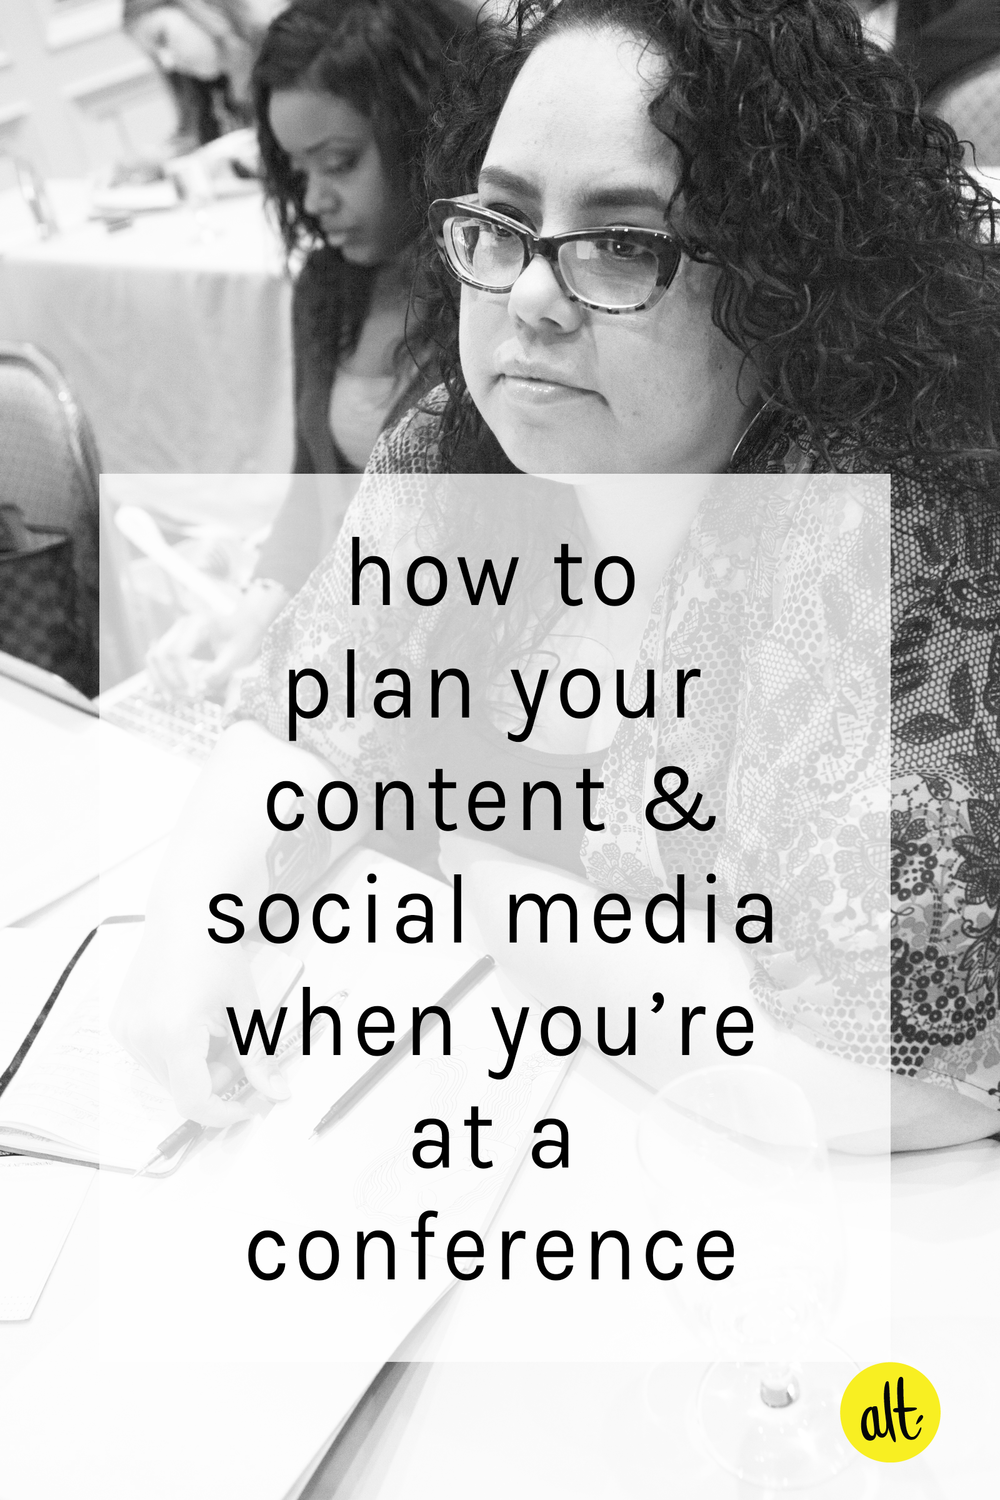 7 tips for planning your blog content and setting up your social media posts before you hop on the plane for your conference.